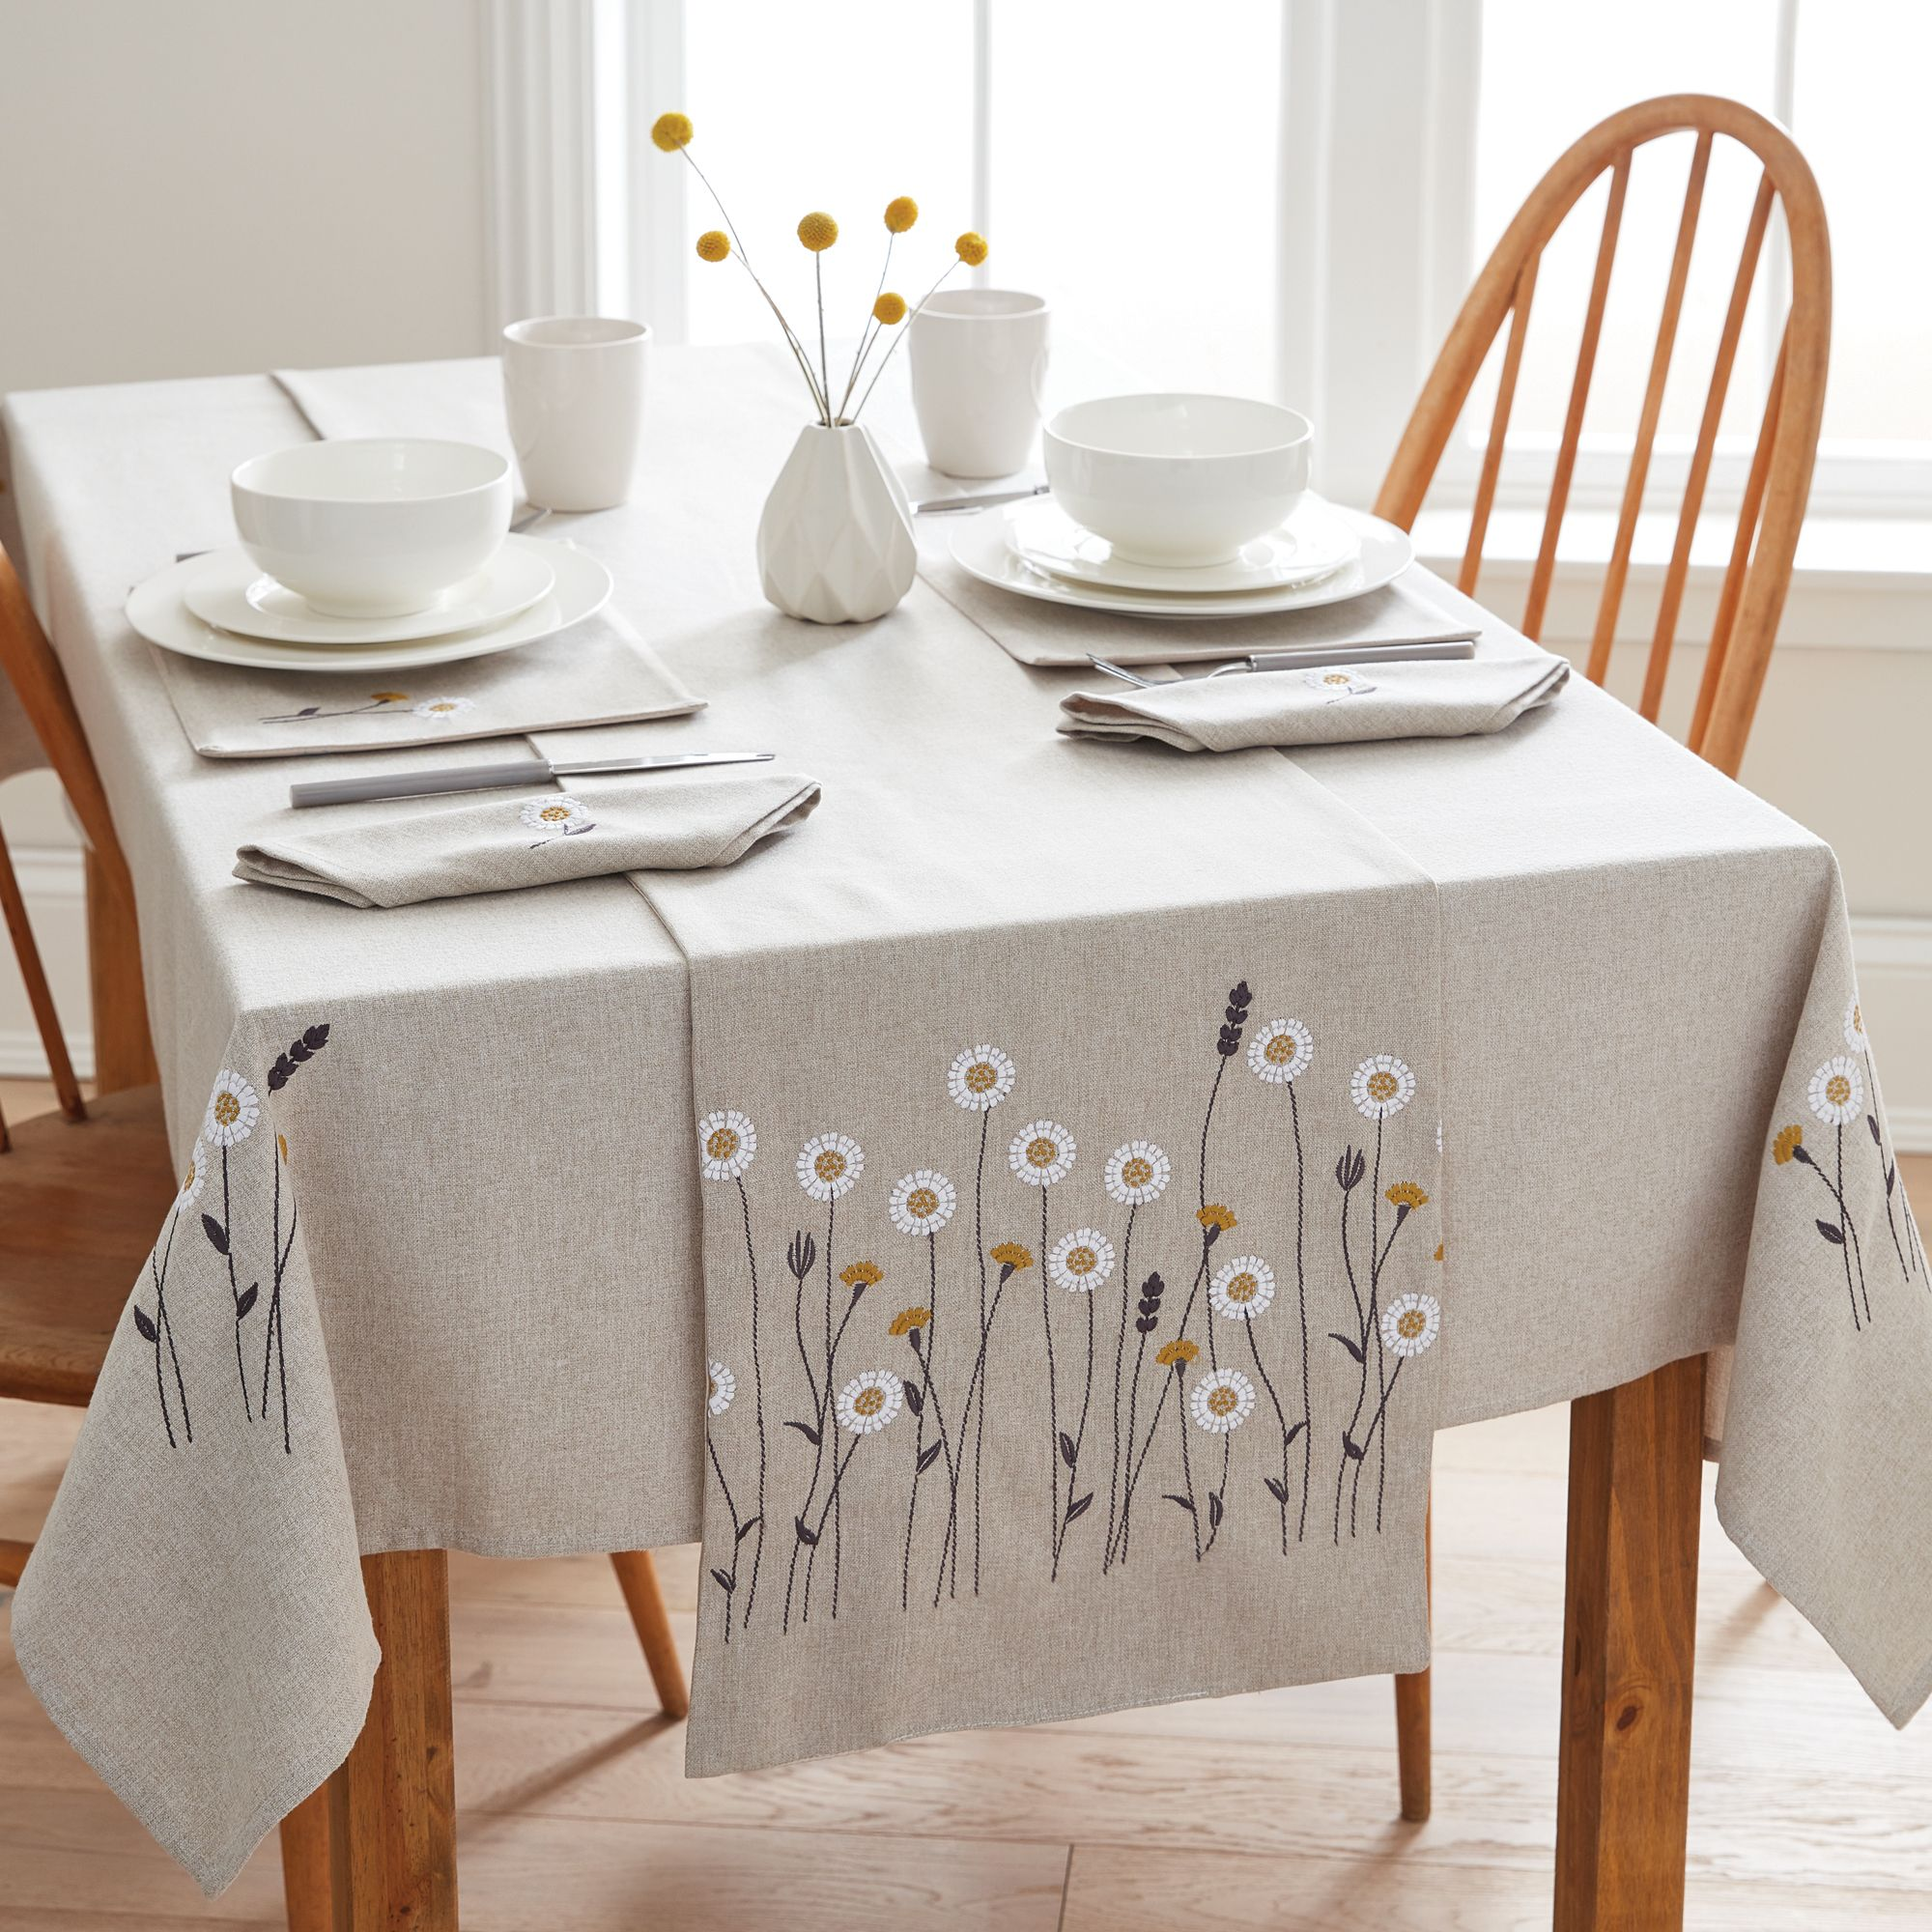 Scandi Floral Tablecloth Dining Table Cloth Floral Tablecloth Table Cloth [ 2000 x 2000 Pixel ]